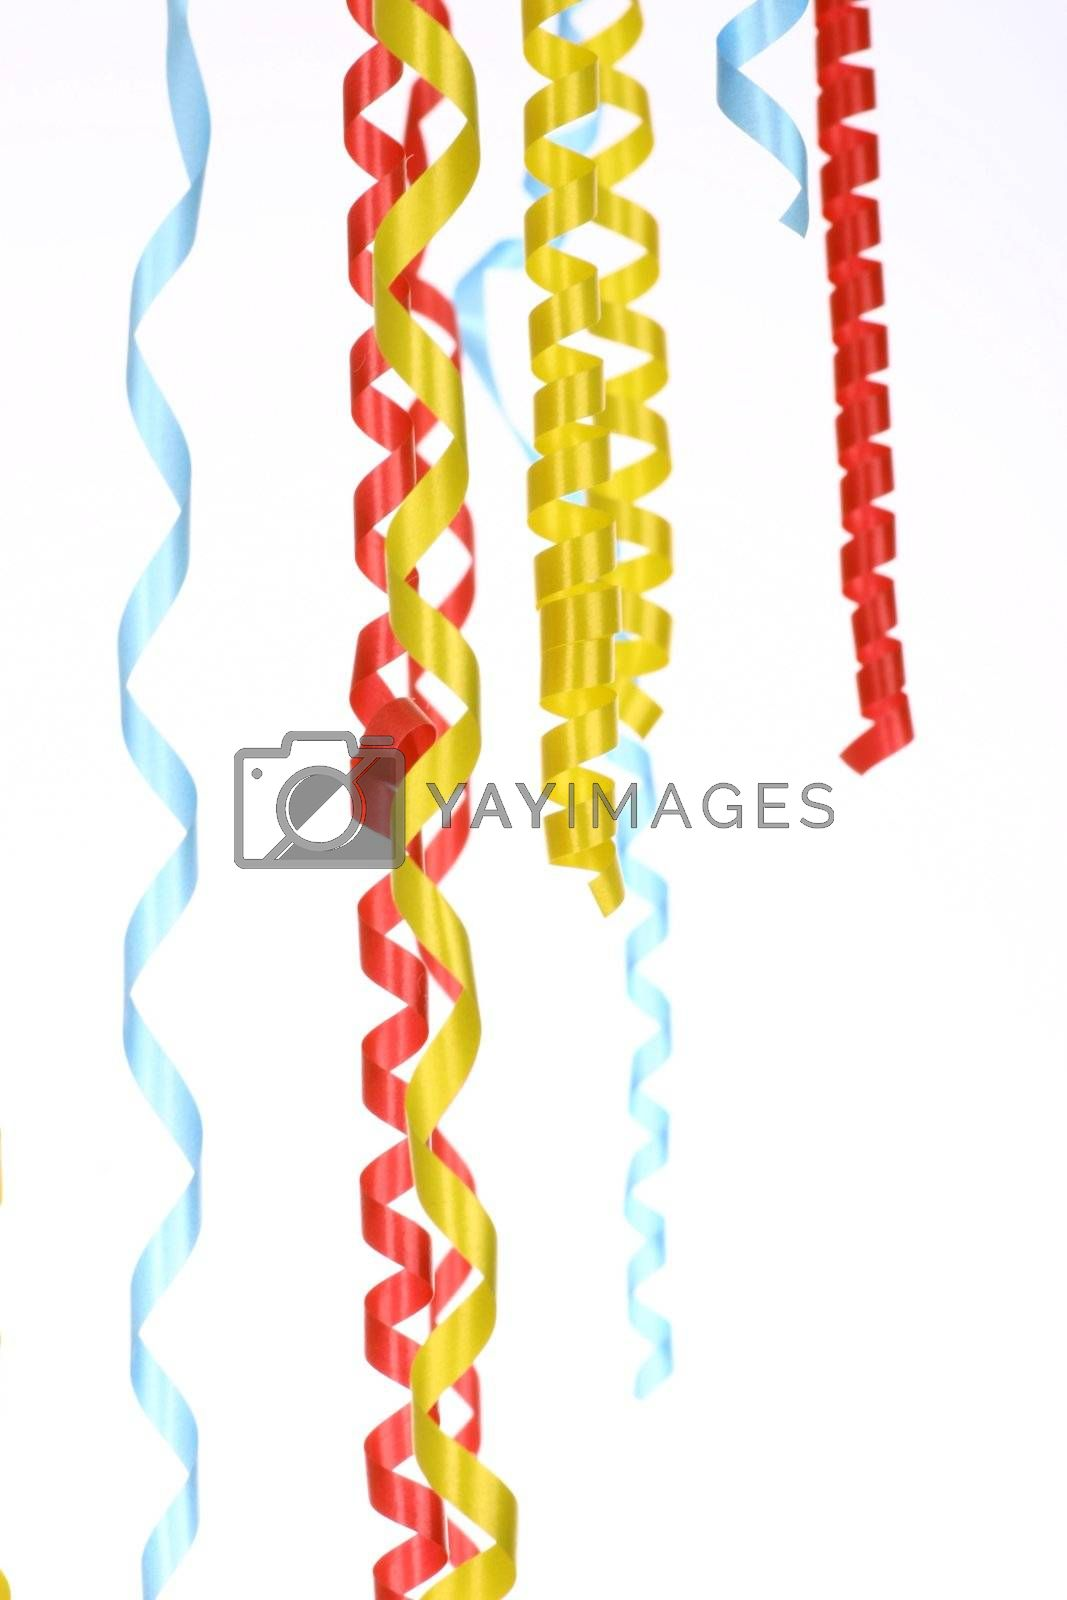 Celebratory streamer of red green and yellow color on a white background (look similar images in my portfolio)